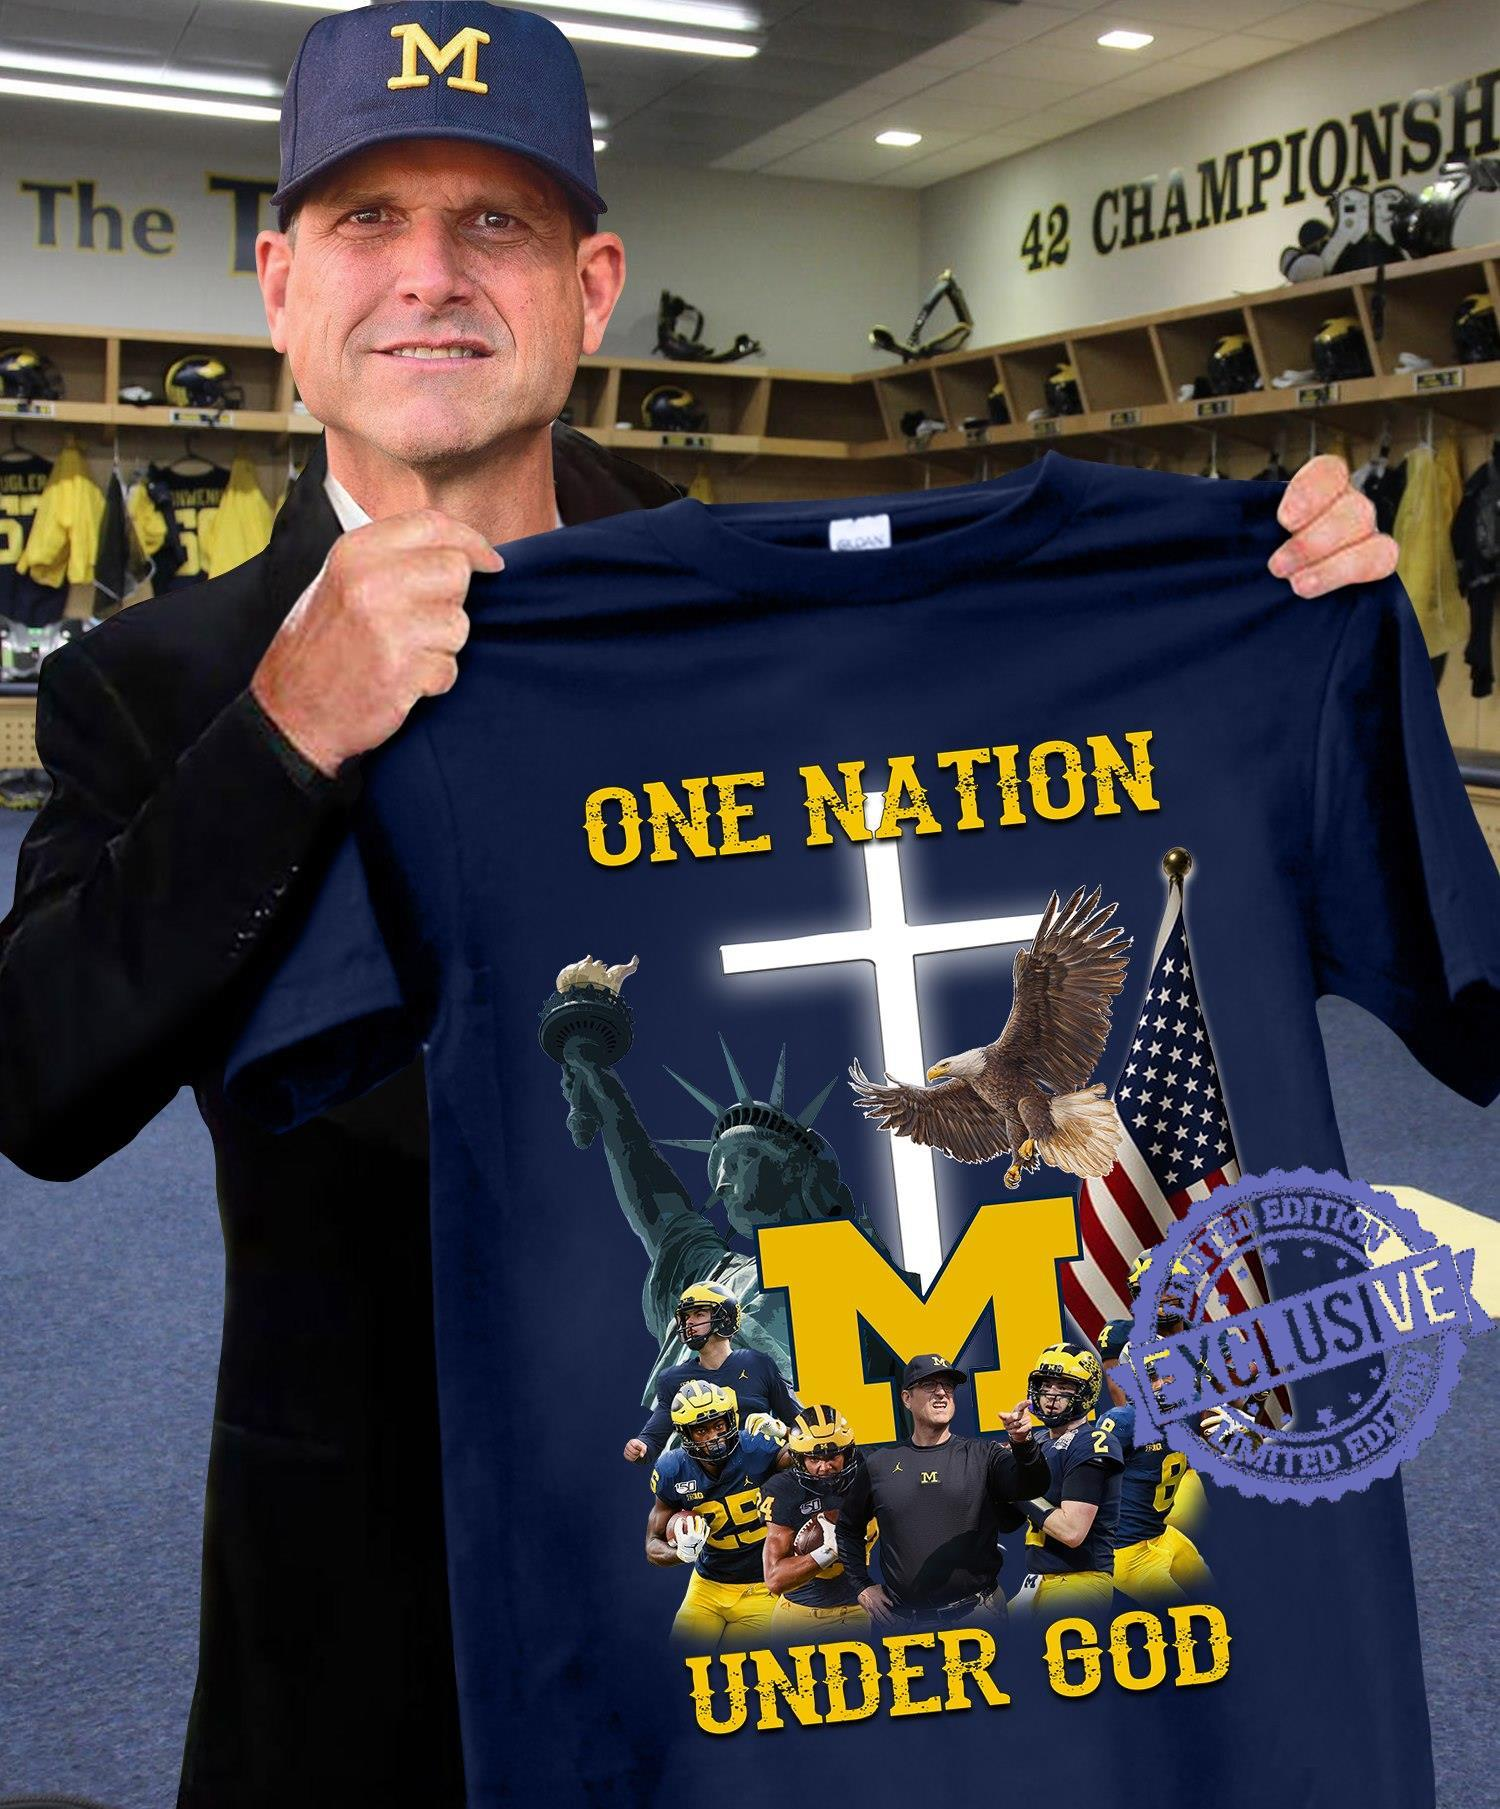 One nation under god shirt